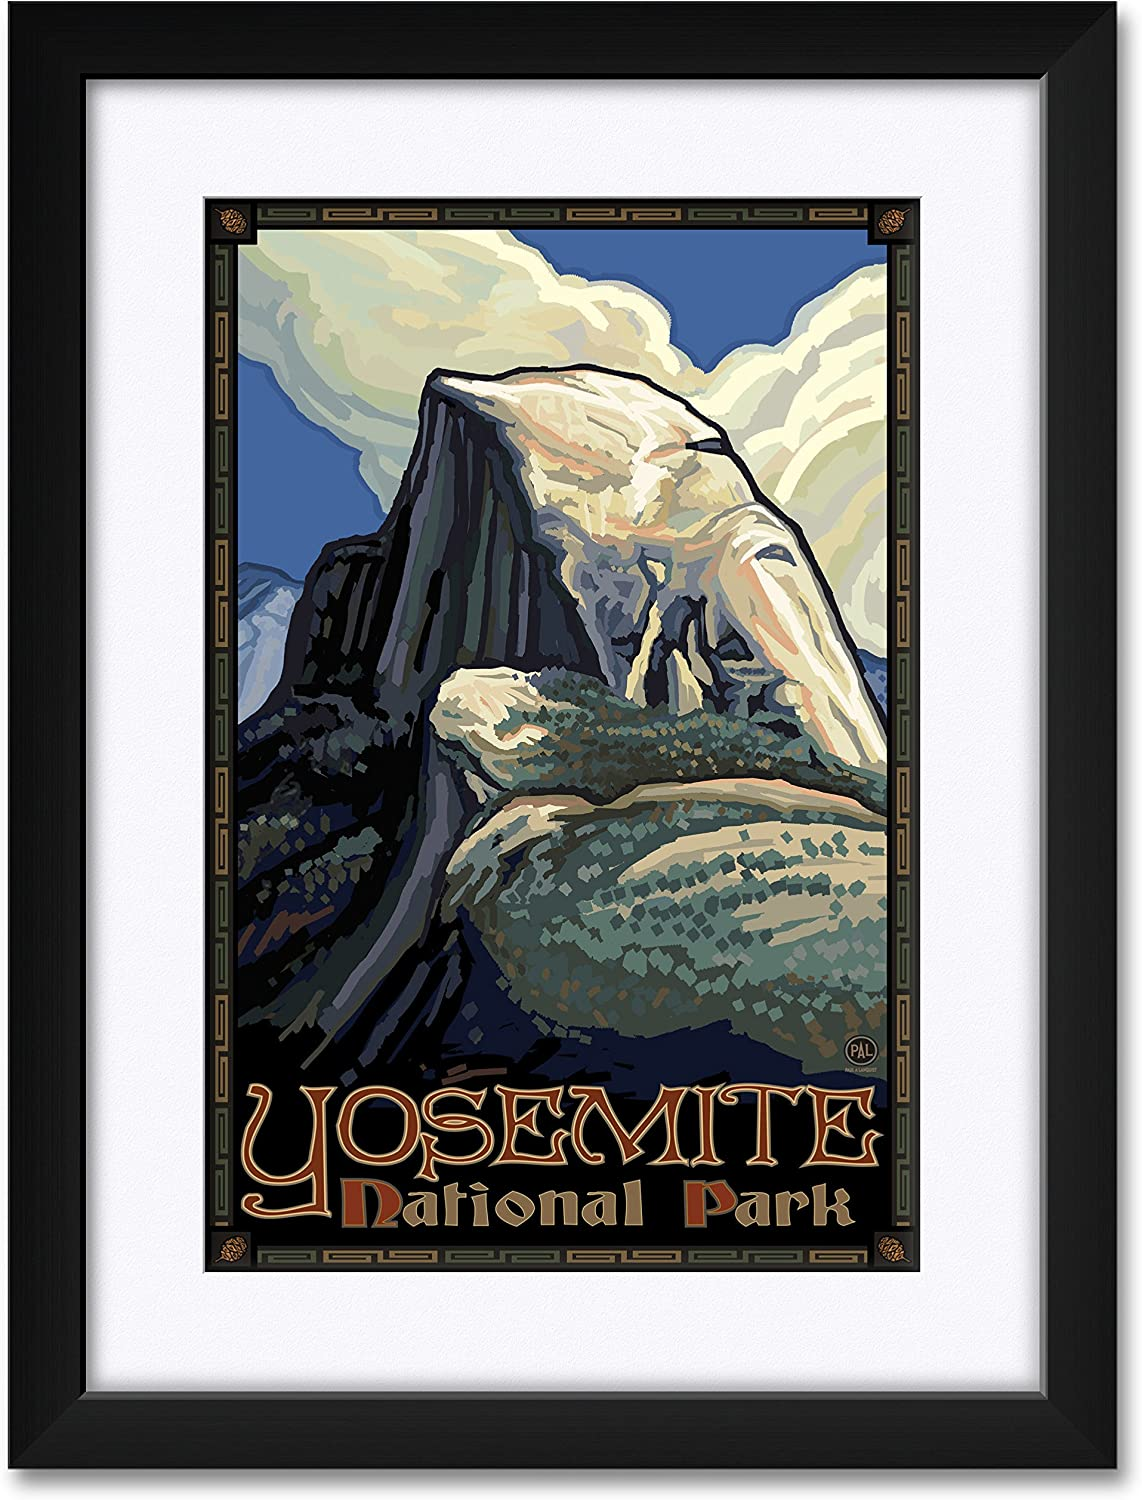 Yosemite National Park Al sold out. Half Professionally Dome Framed Matted Max 51% OFF